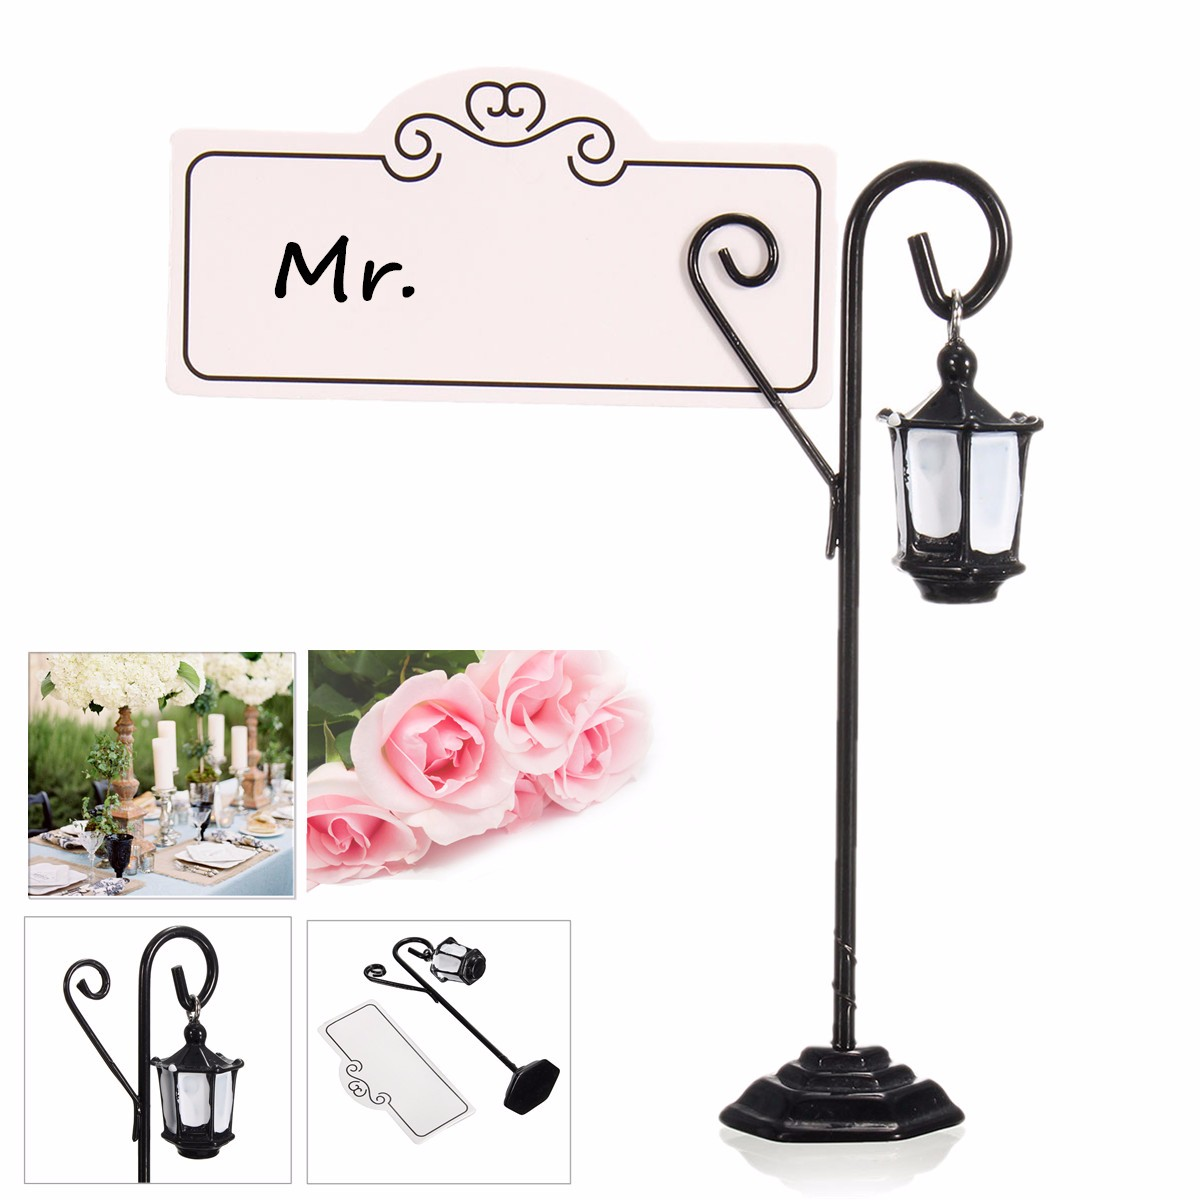 1 Pcs Metal Street Light Pattern Wedding Place Name Card Holder Party Gift Accessories